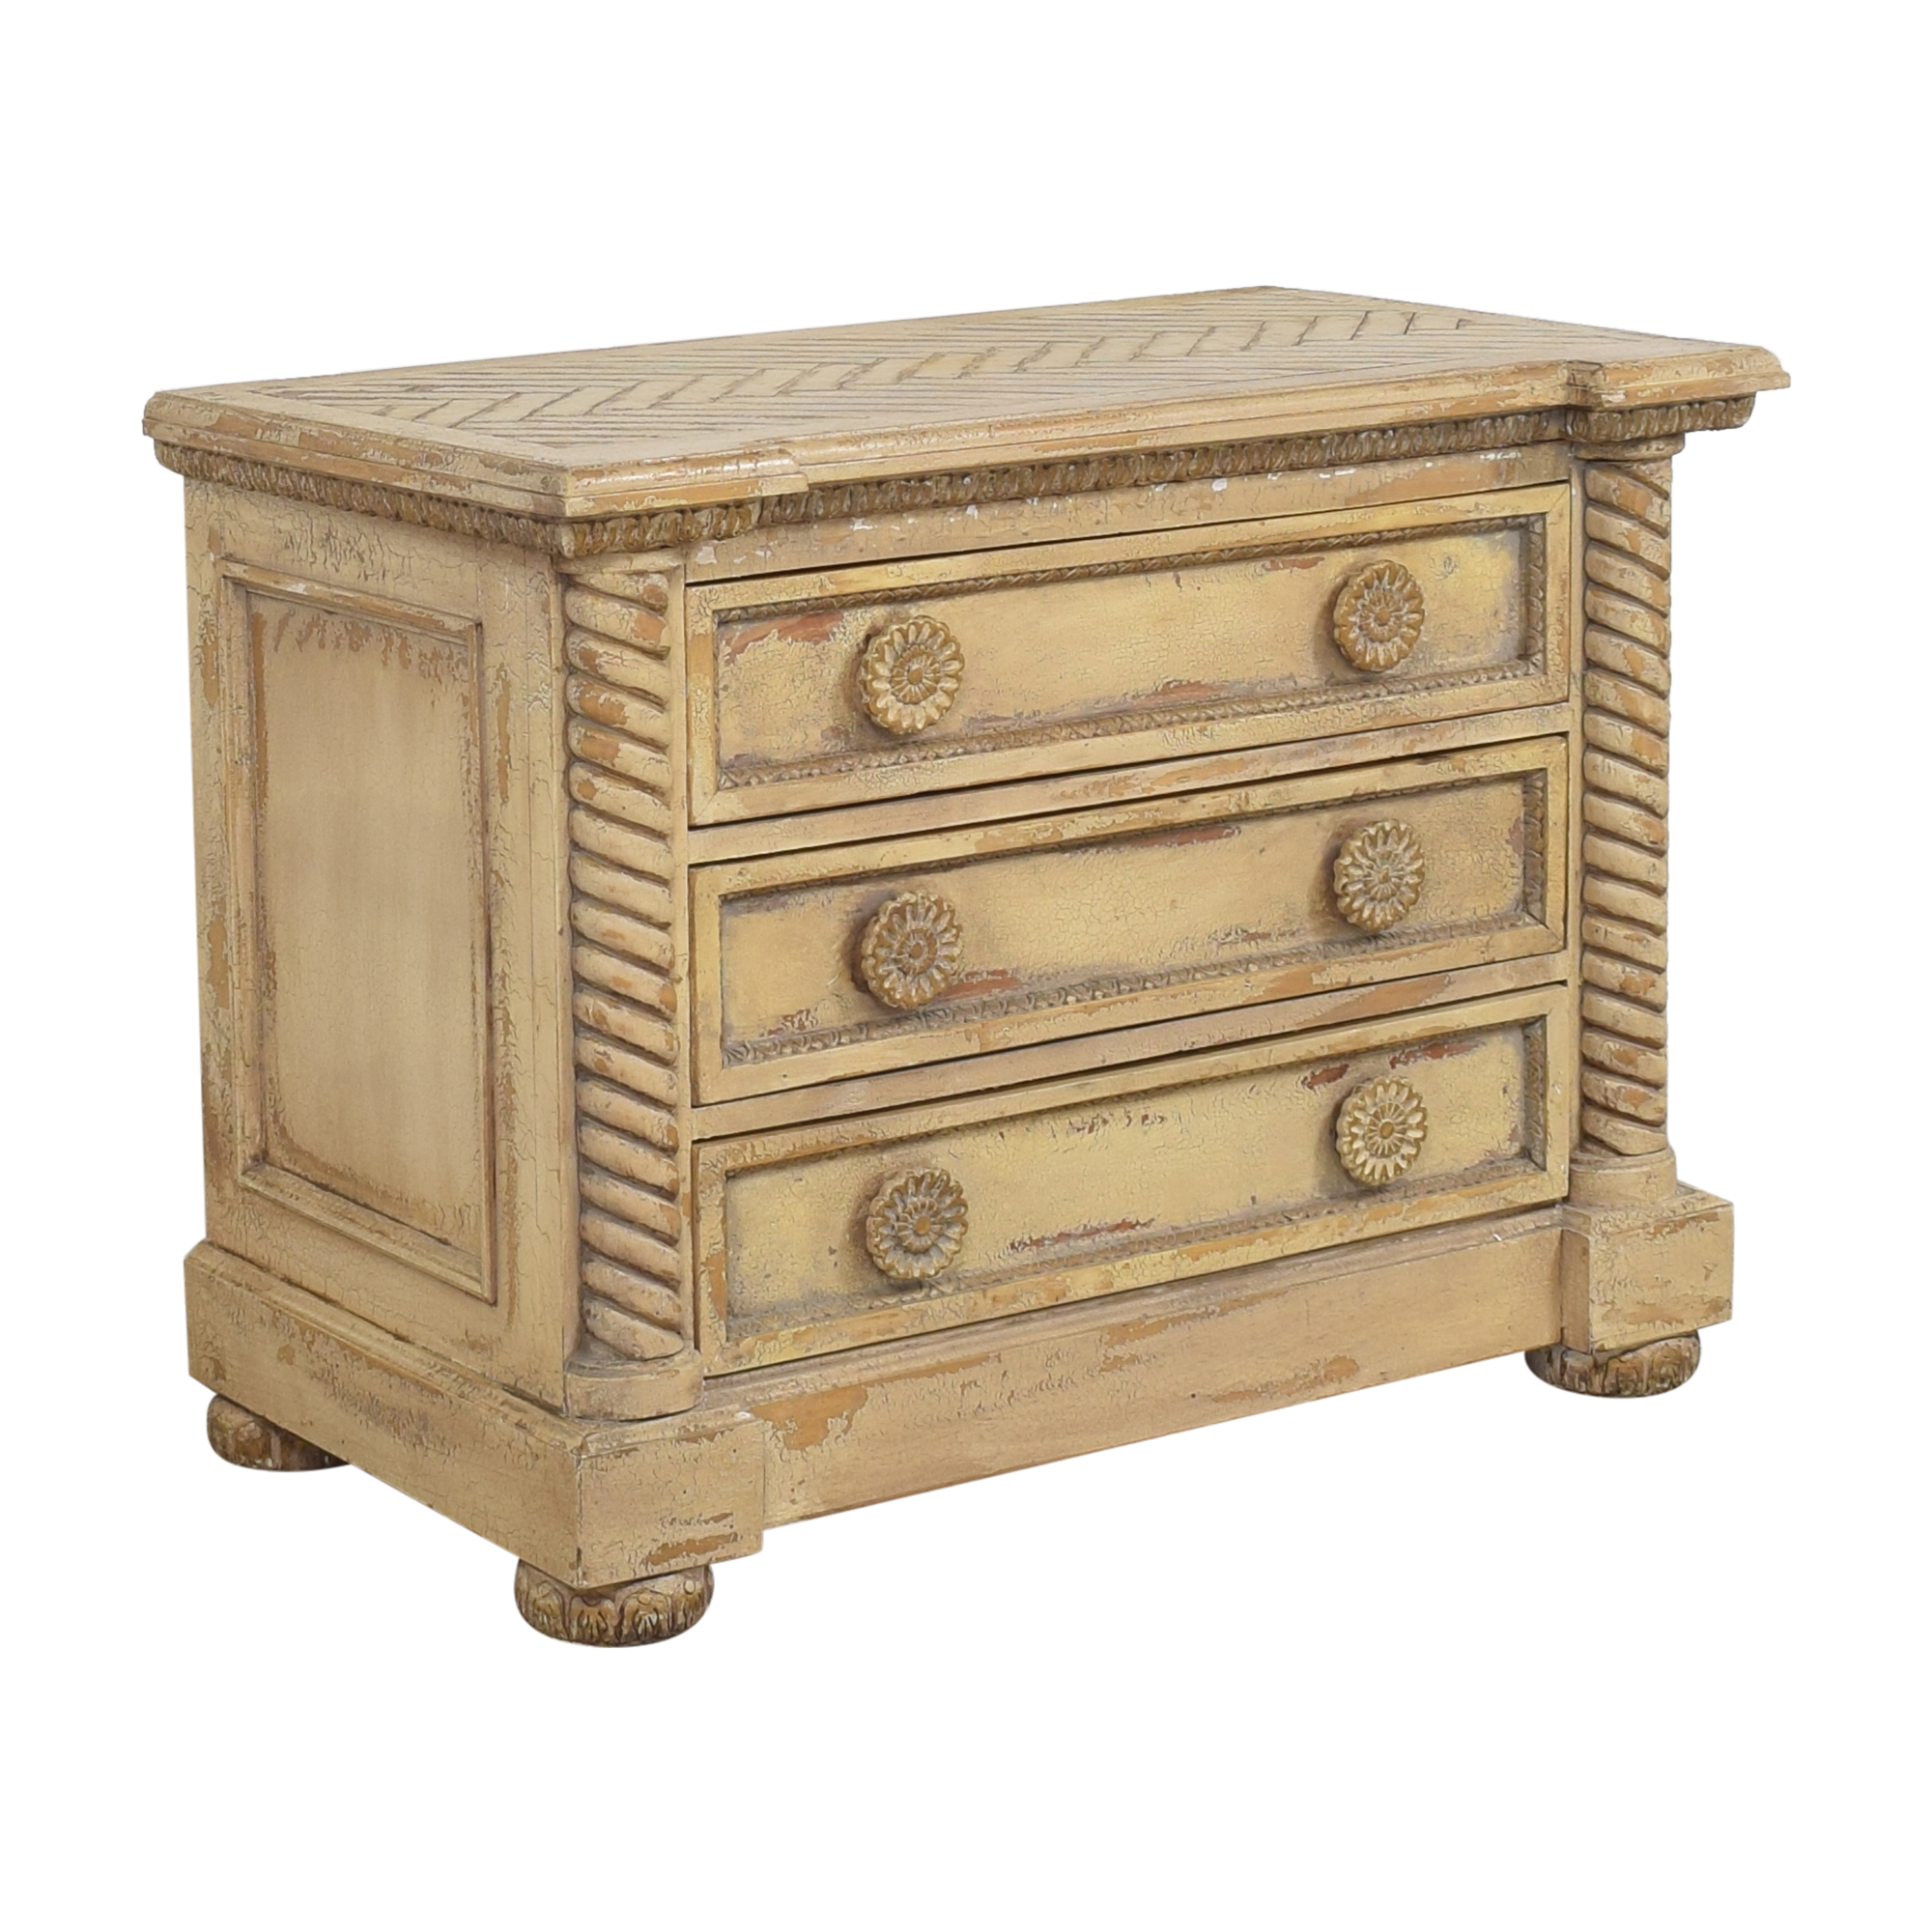 Macy's Macy's Three Drawer Chest dimensions